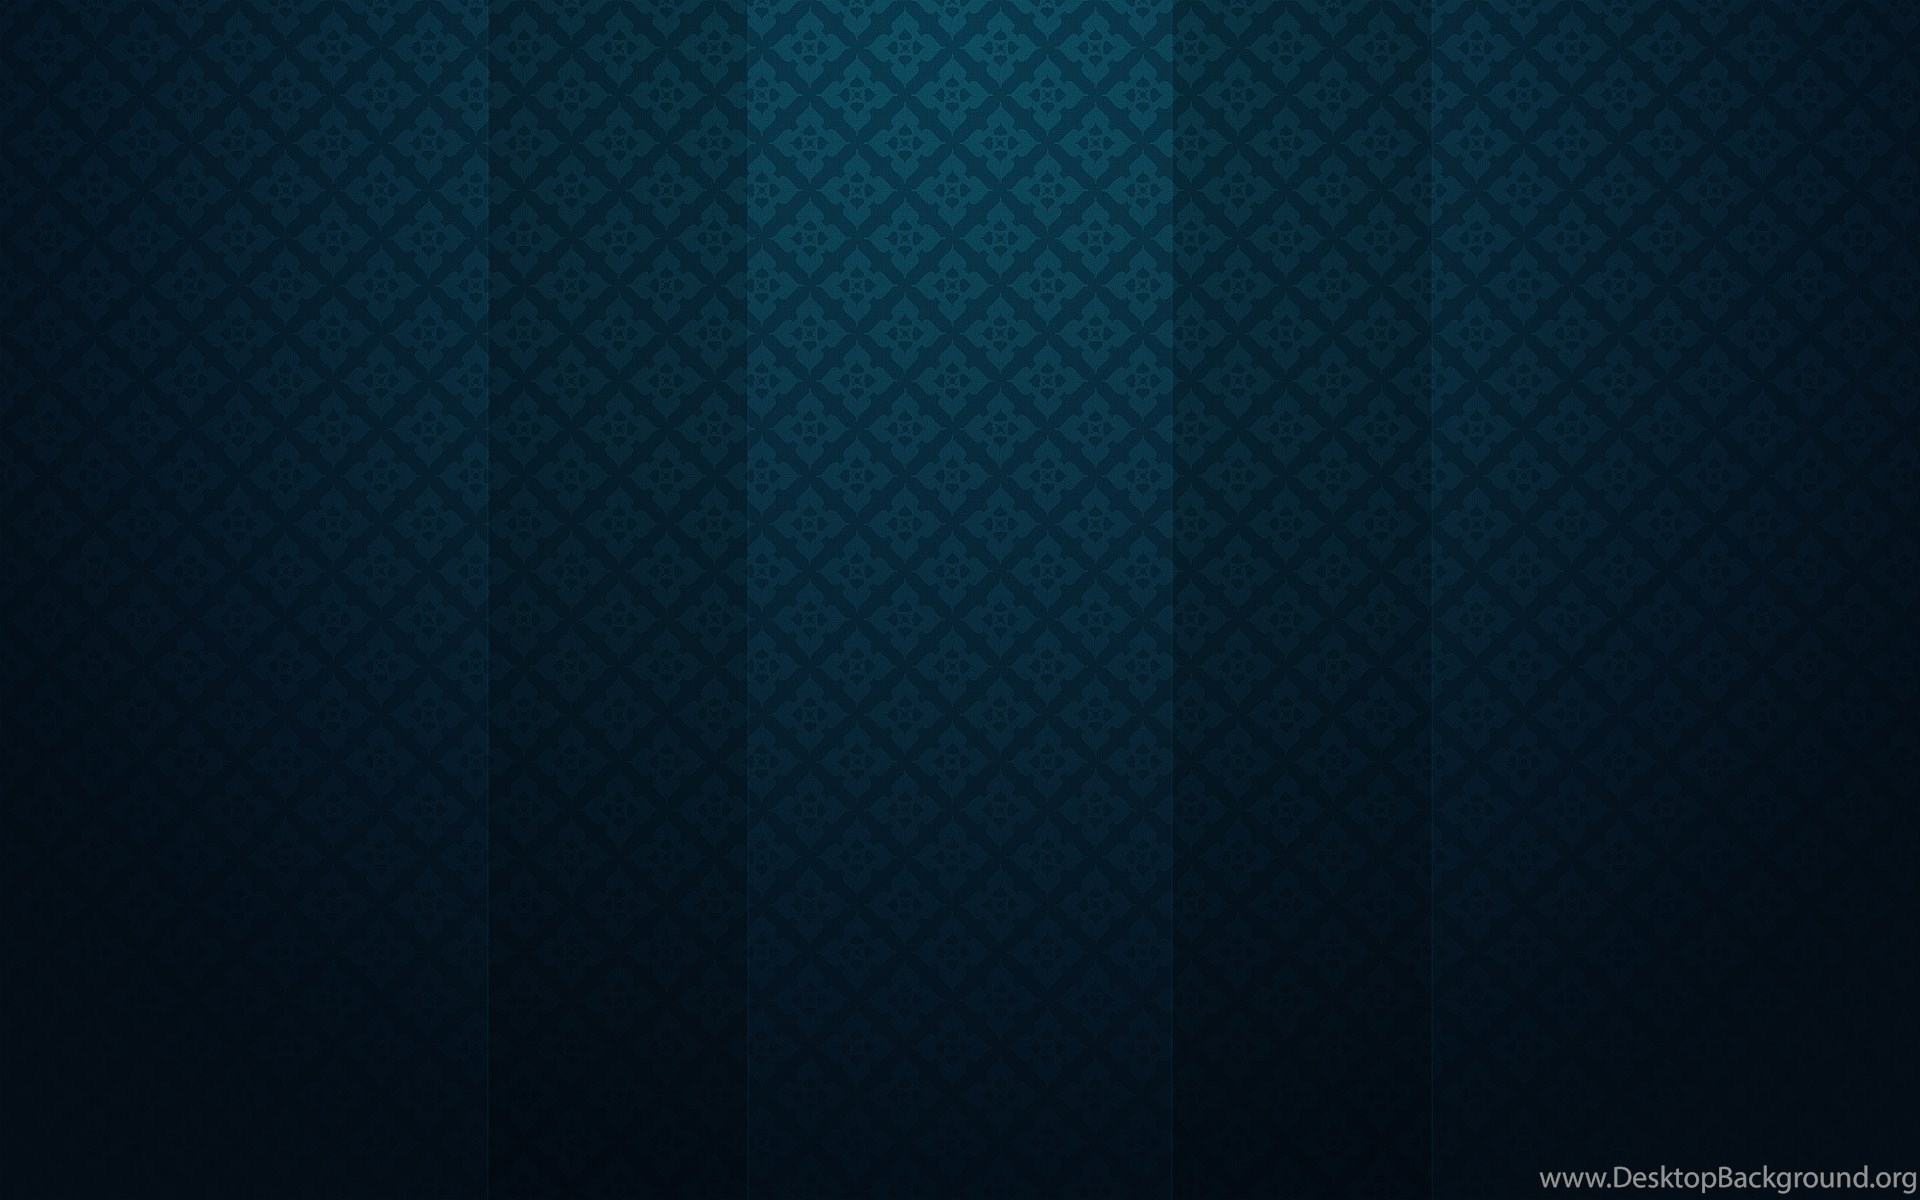 Simple Textures Backgrounds HD Wallpapers Desktop Background